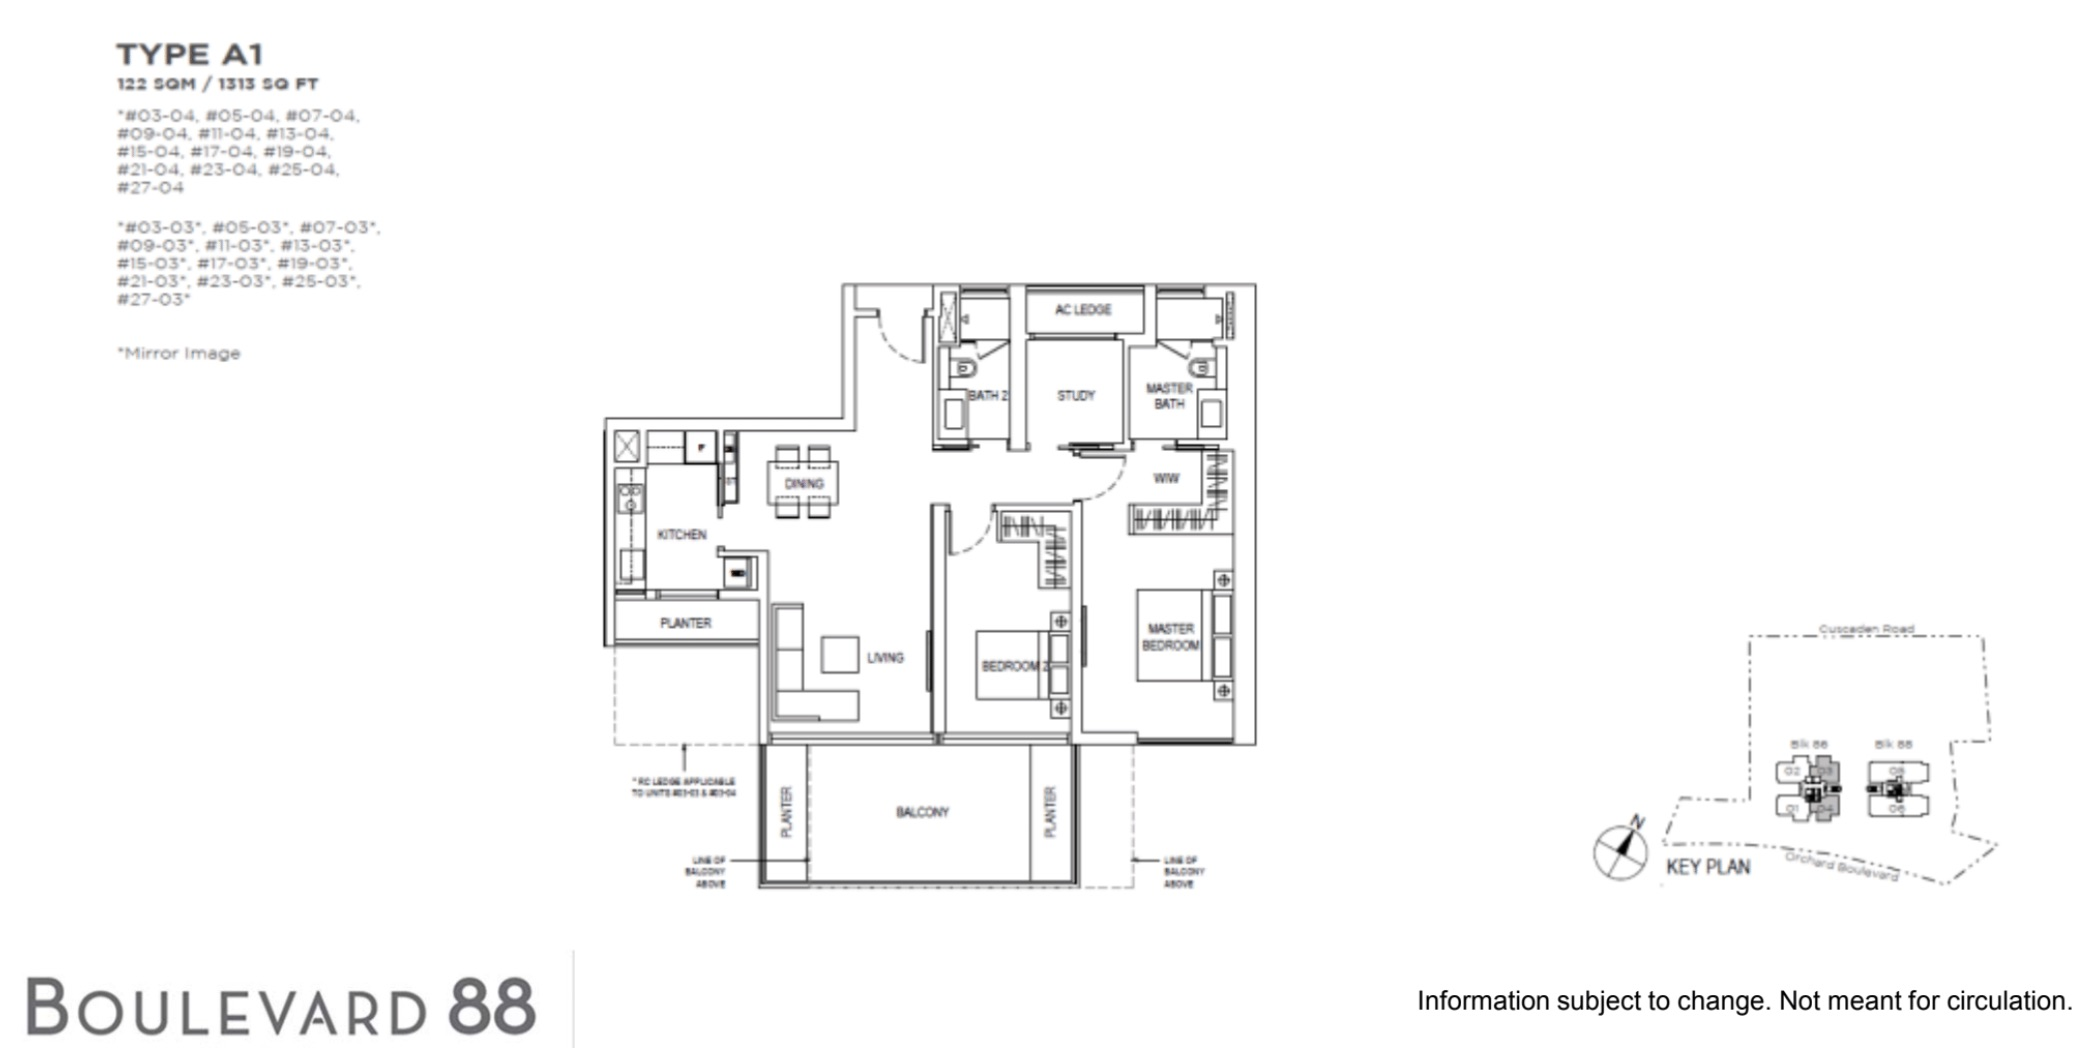 Boulevard 88 By Cdl Call Showflat Hotline At 6100 7722 For Ebrochure